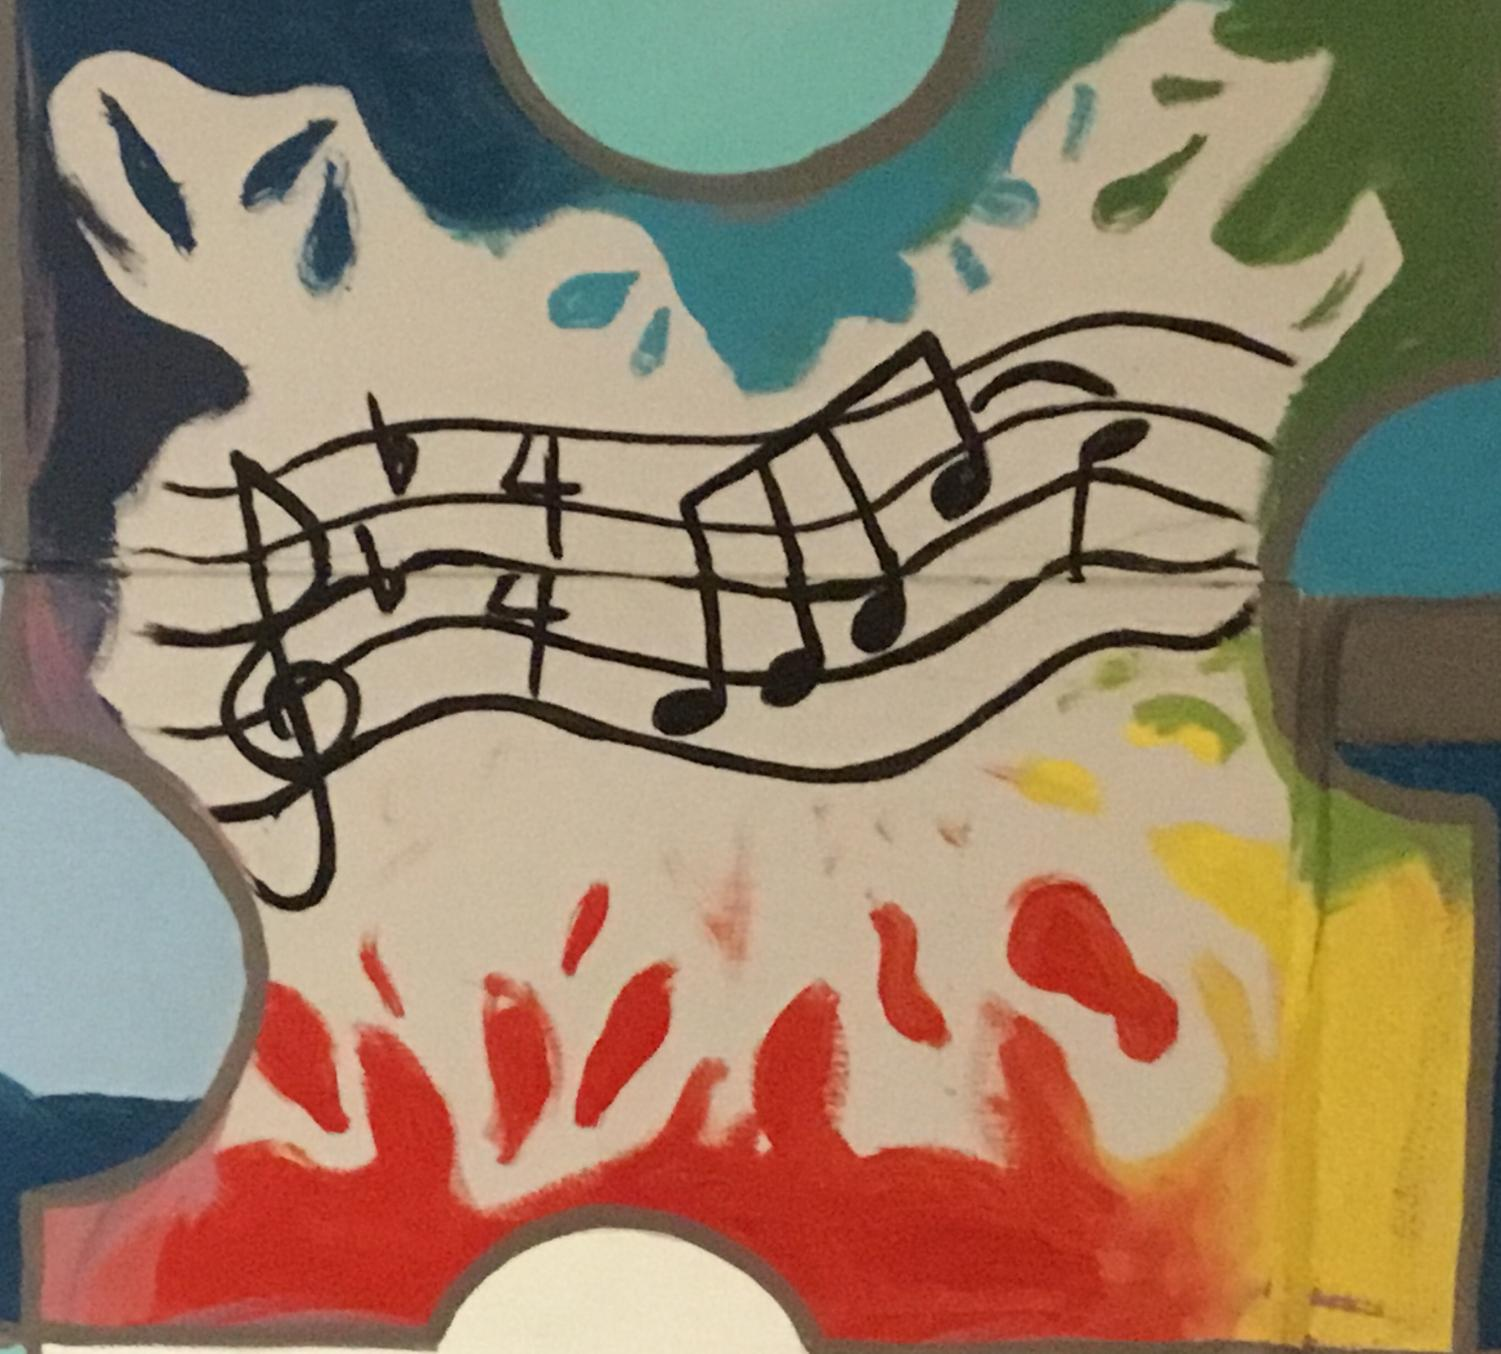 A picture of a mural from mural club representing music.